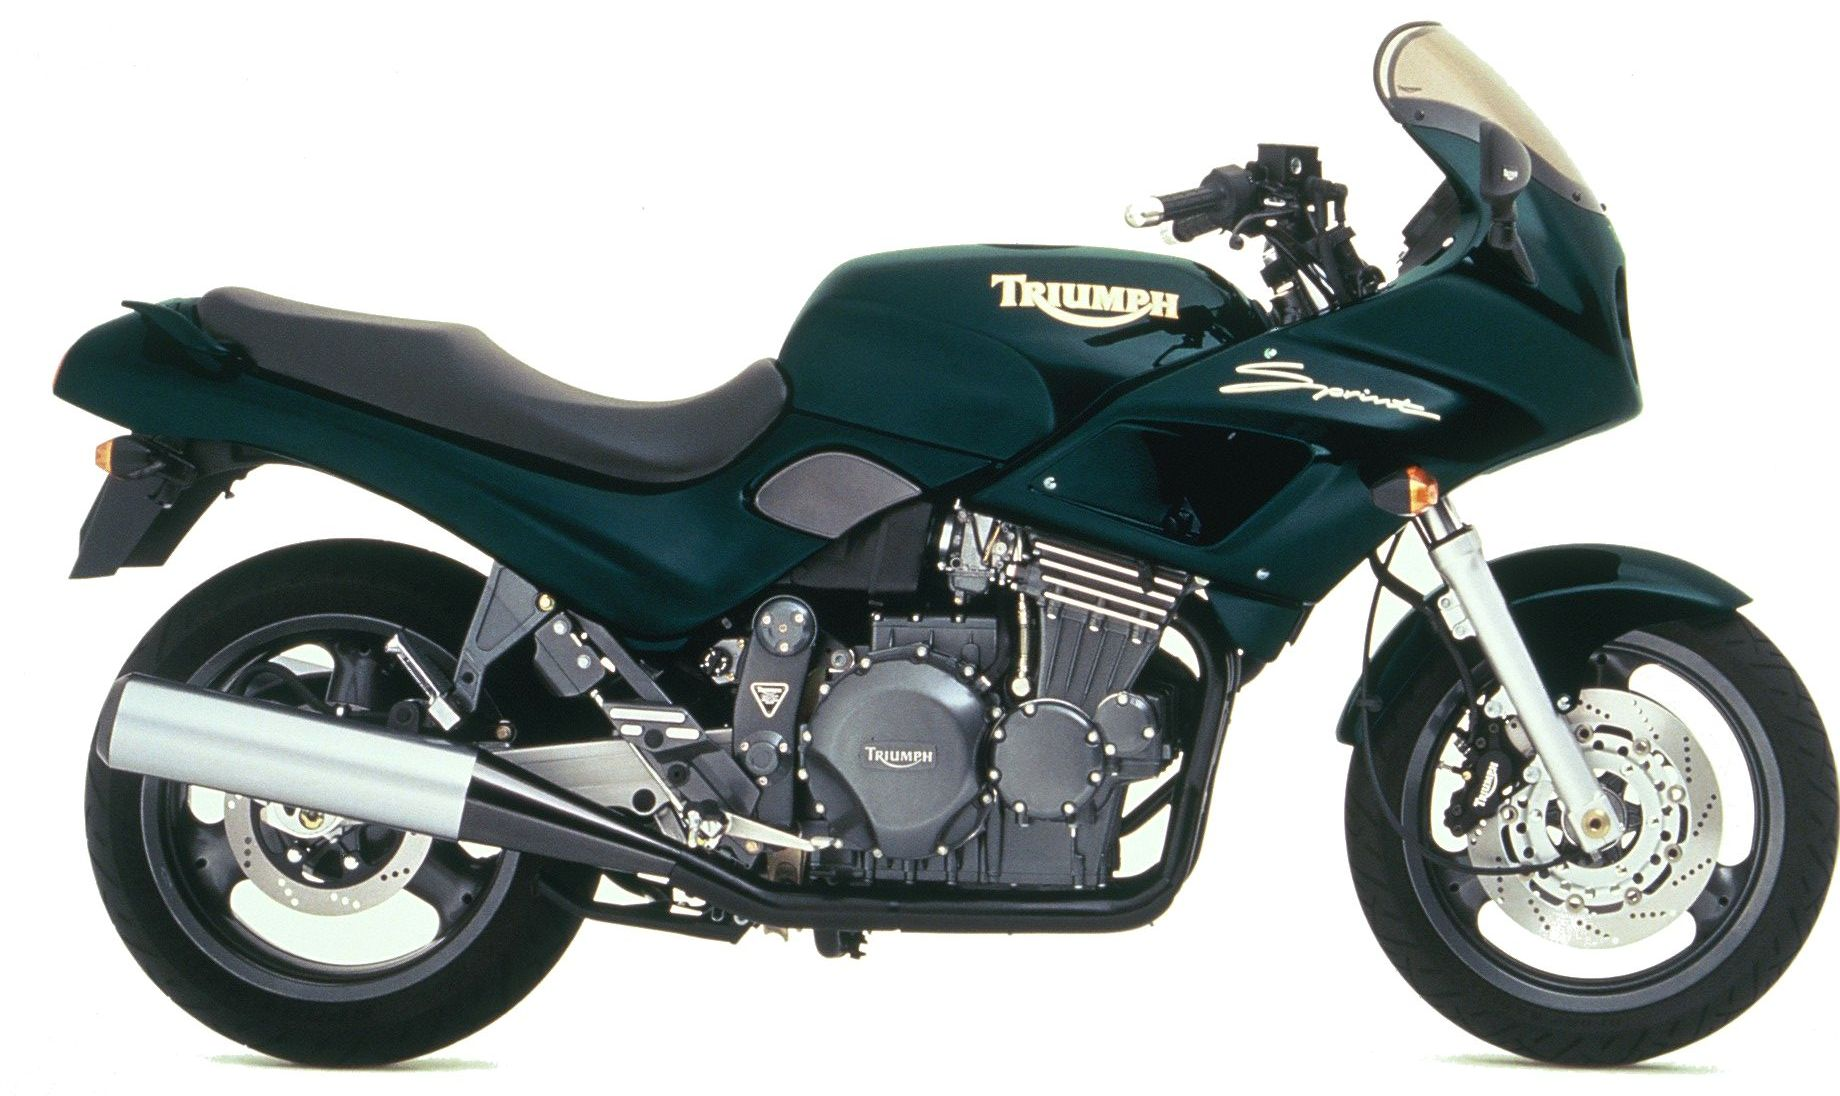 Triumph Trophy 900 1995 wallpapers #130239